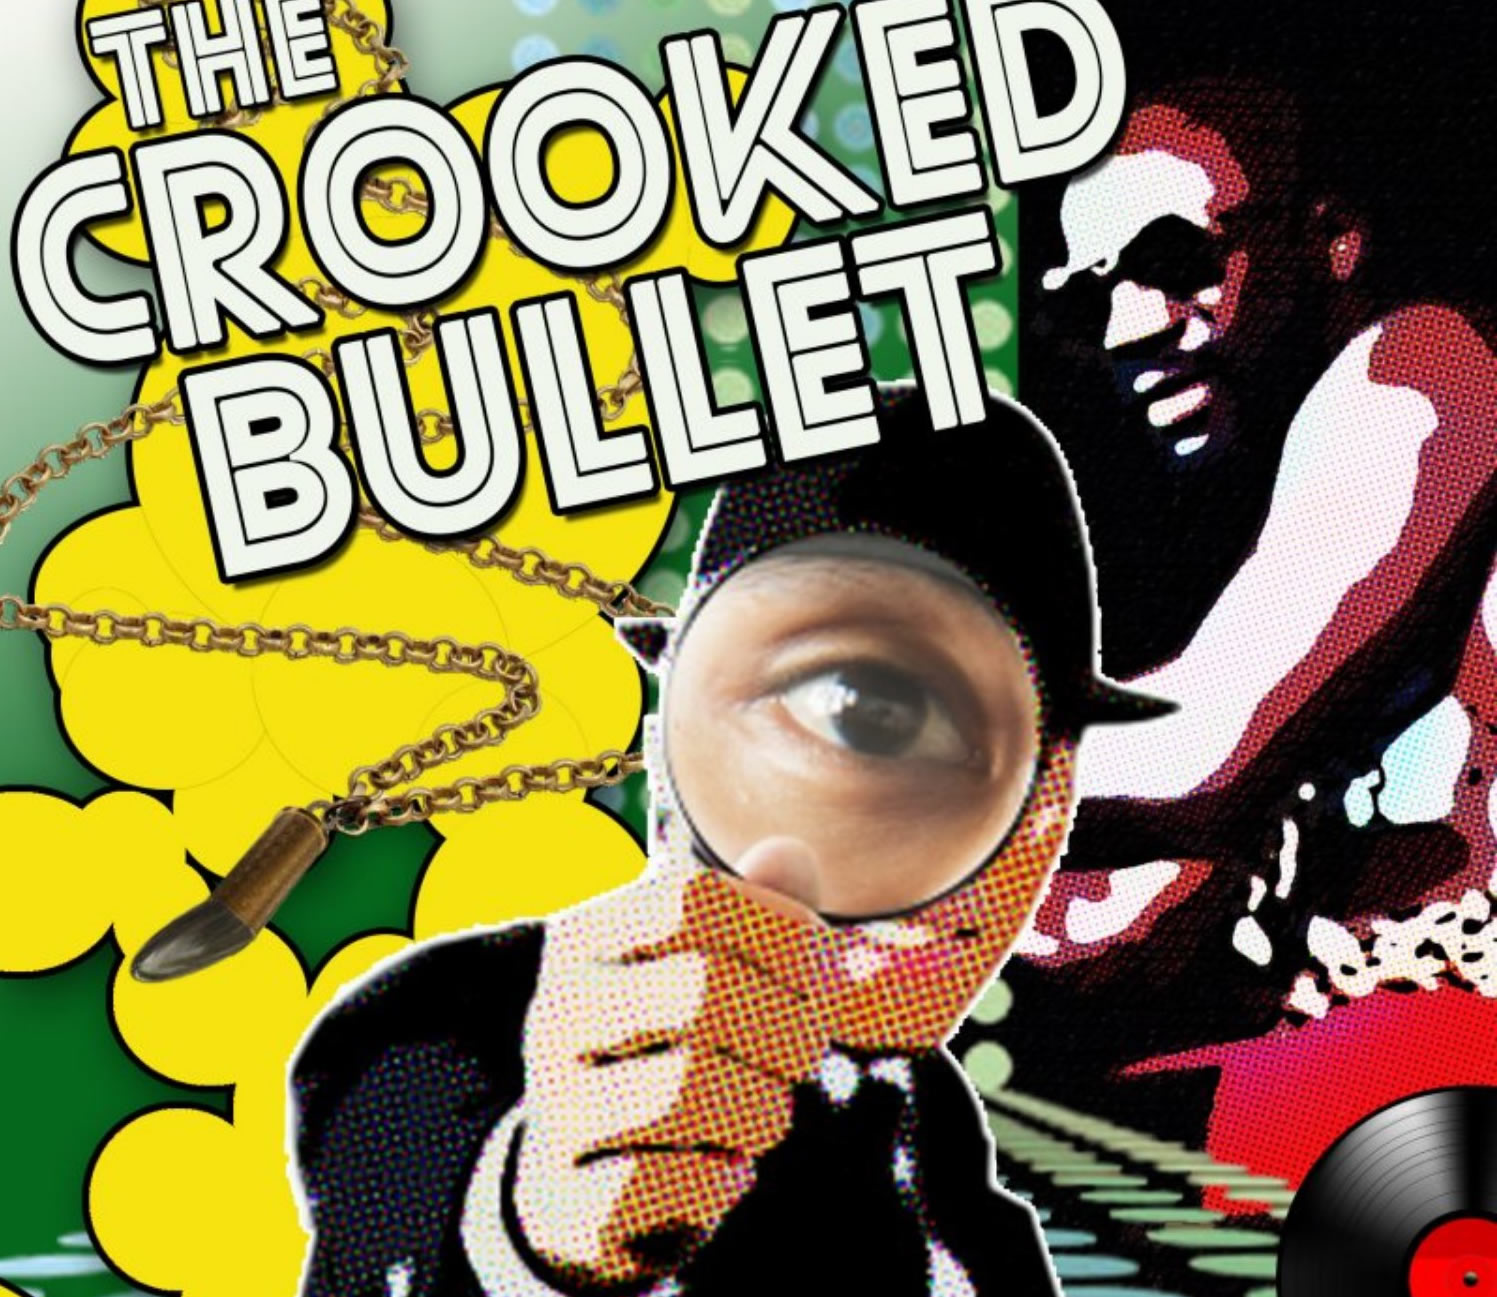 Gathering The Crooked Bullet 9